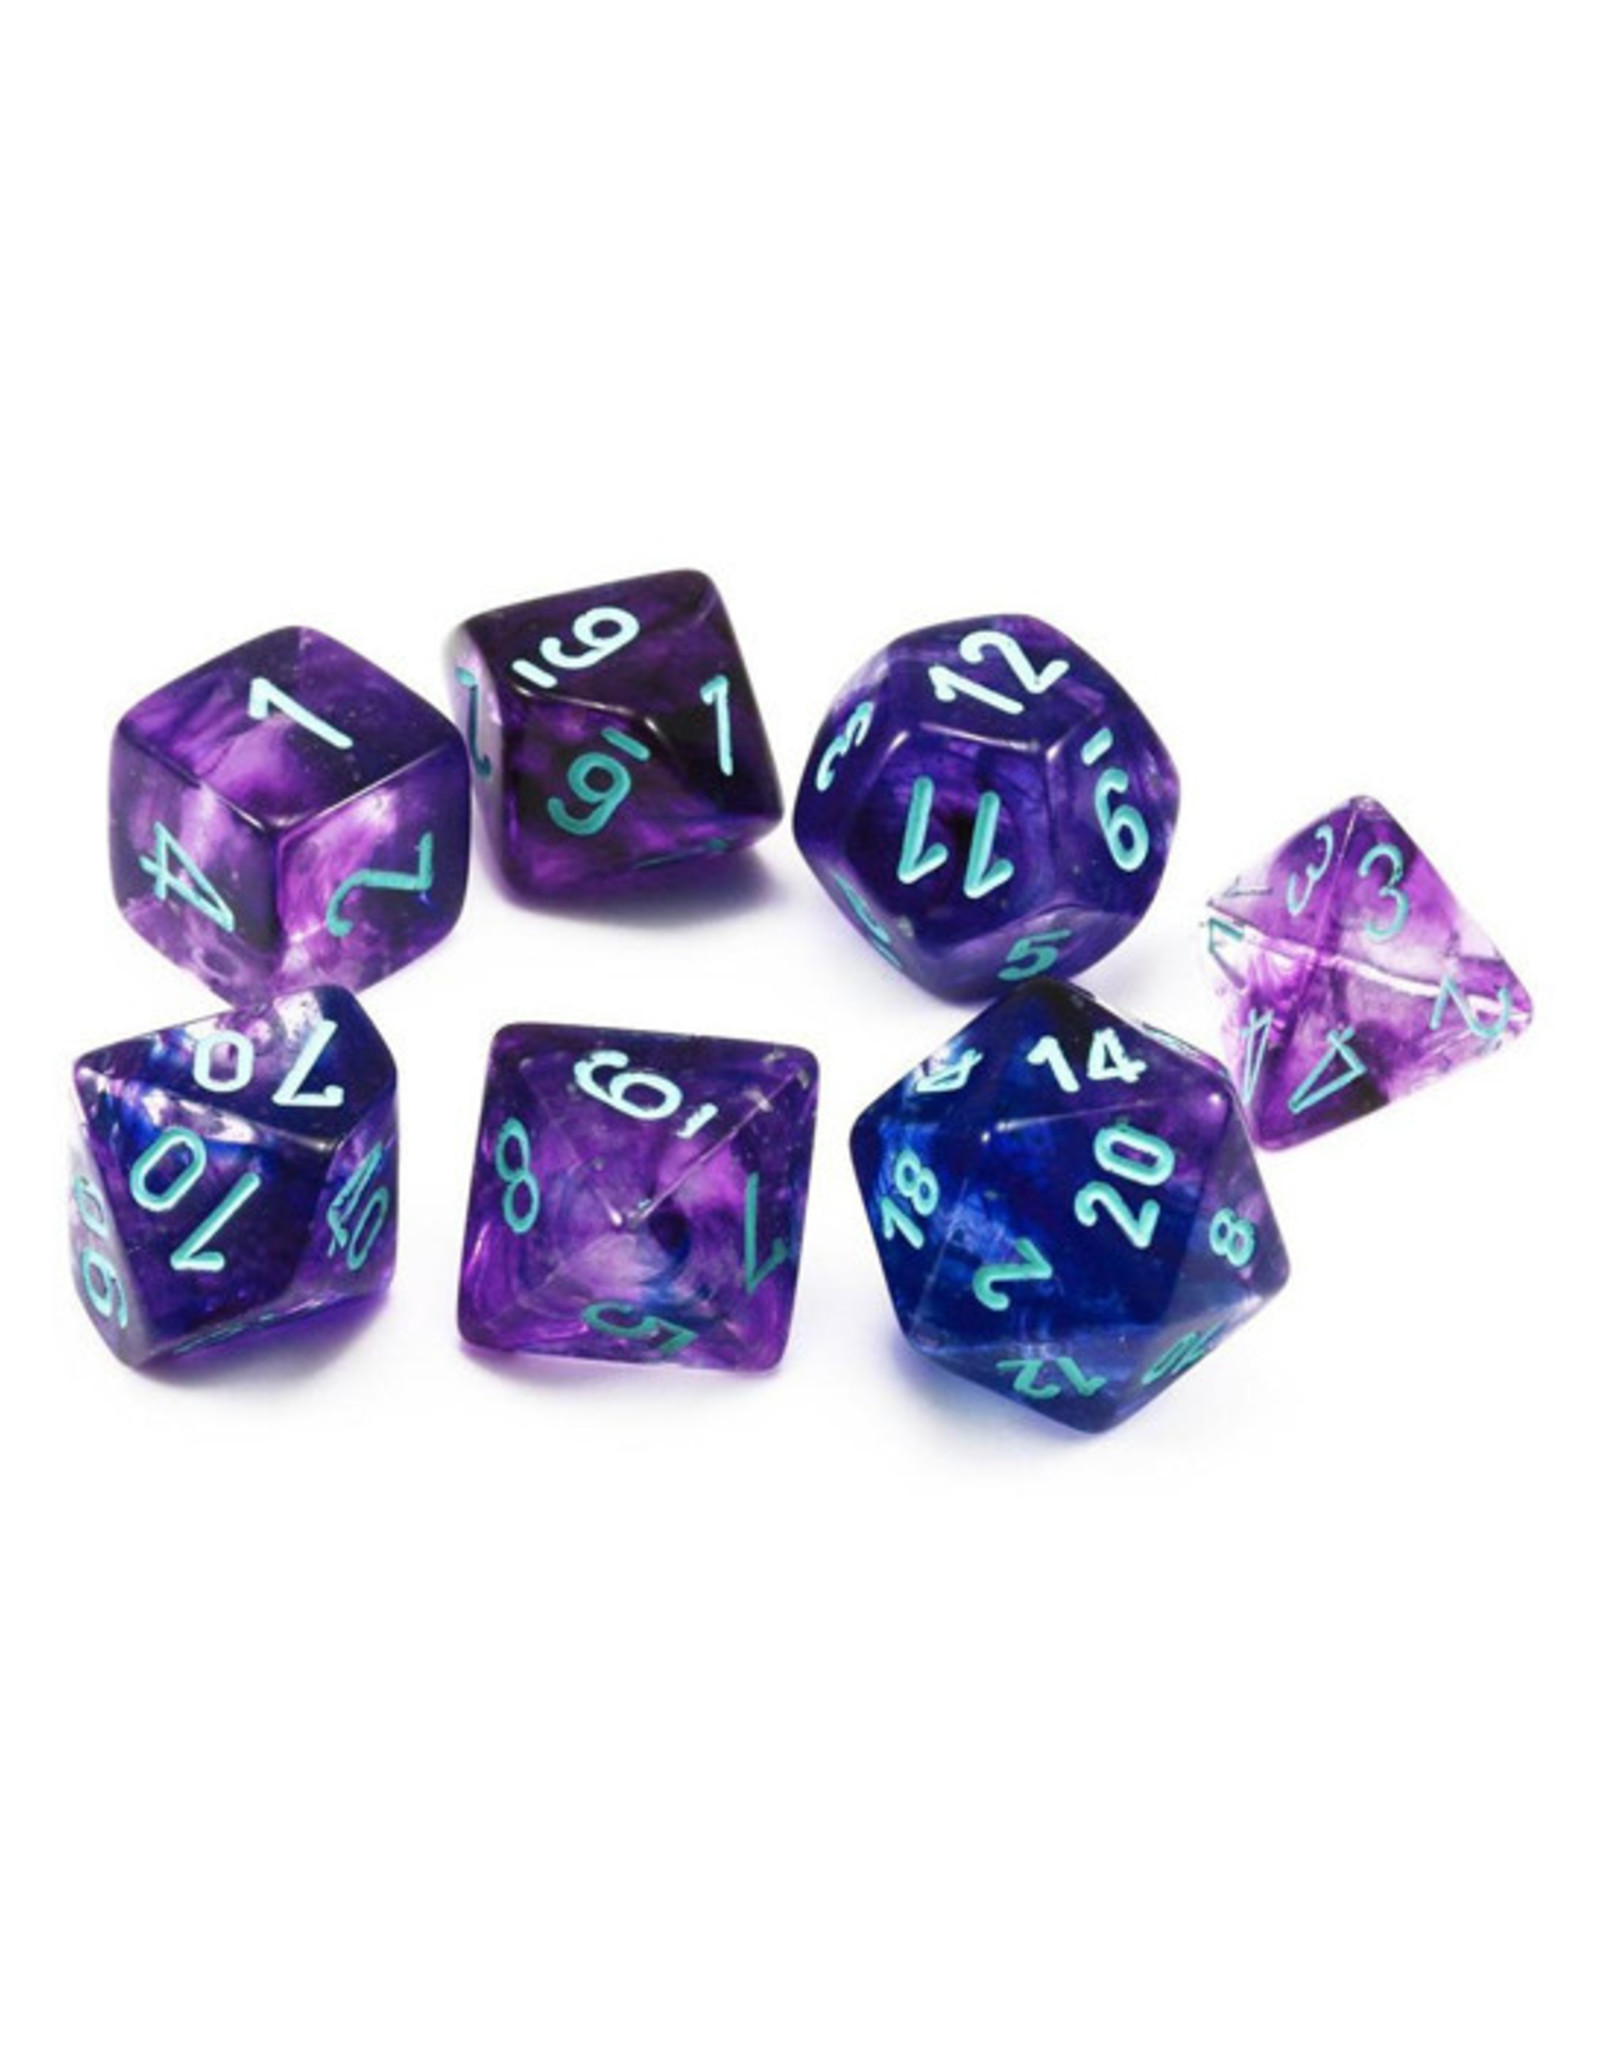 Chessex Chessex: Poly 7 Set - Nebula - Nocturnal w/ Blue